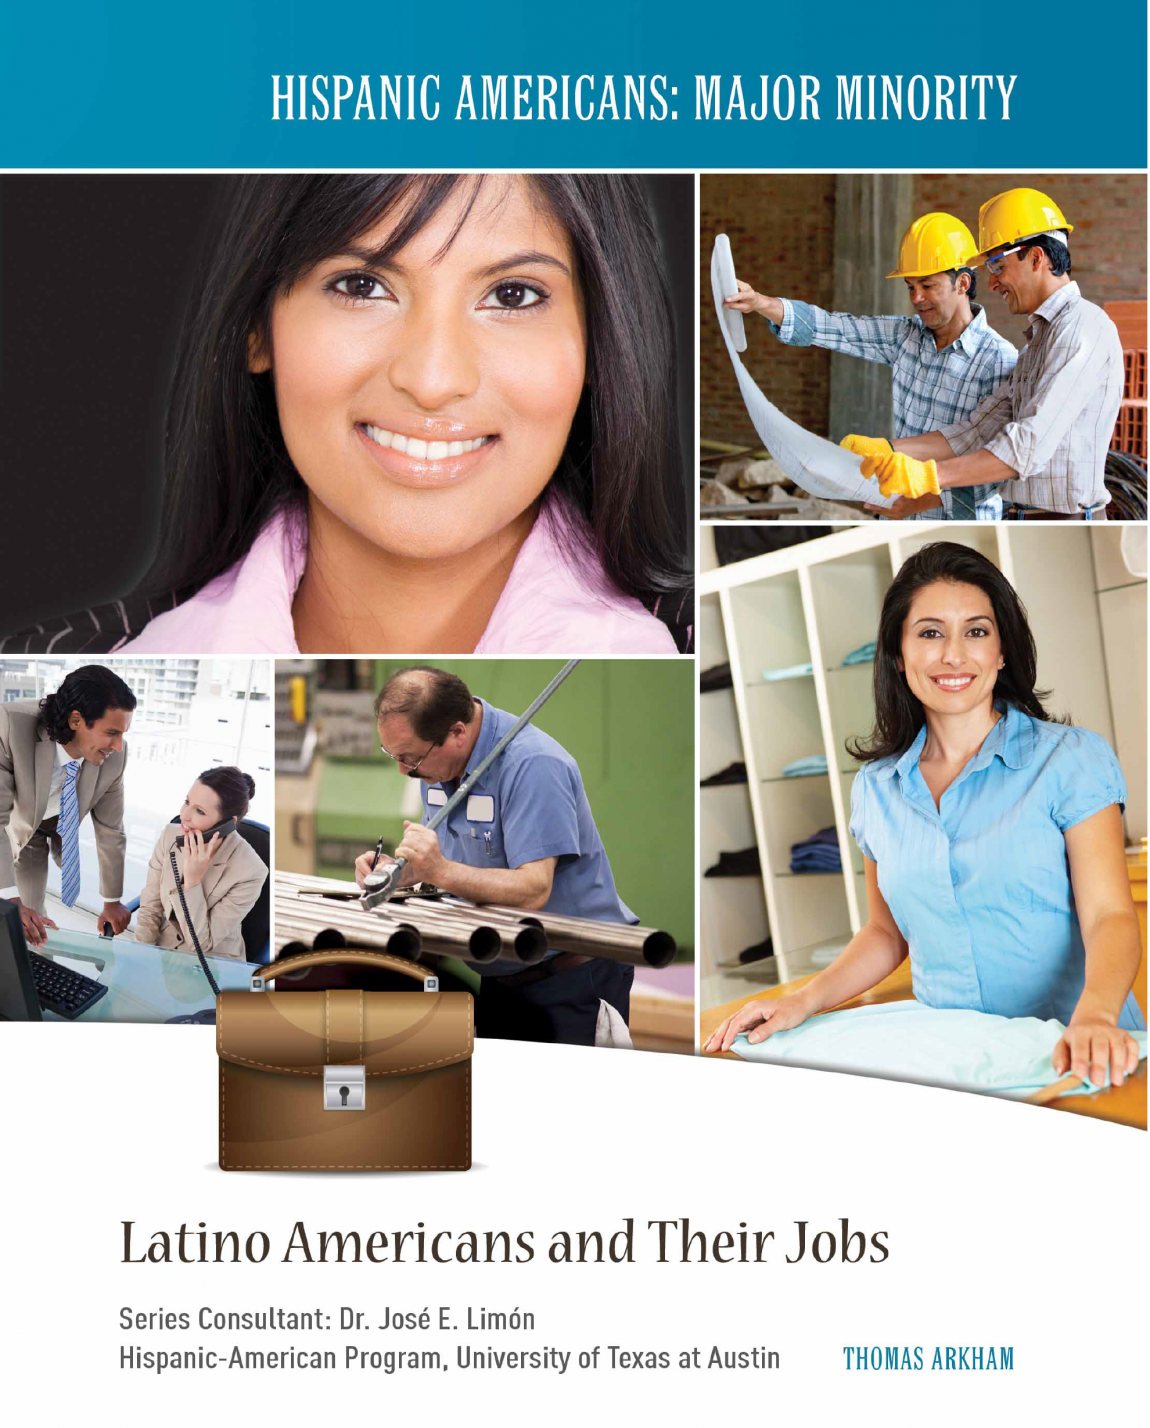 latino-americans-and-their-jobs-01.png